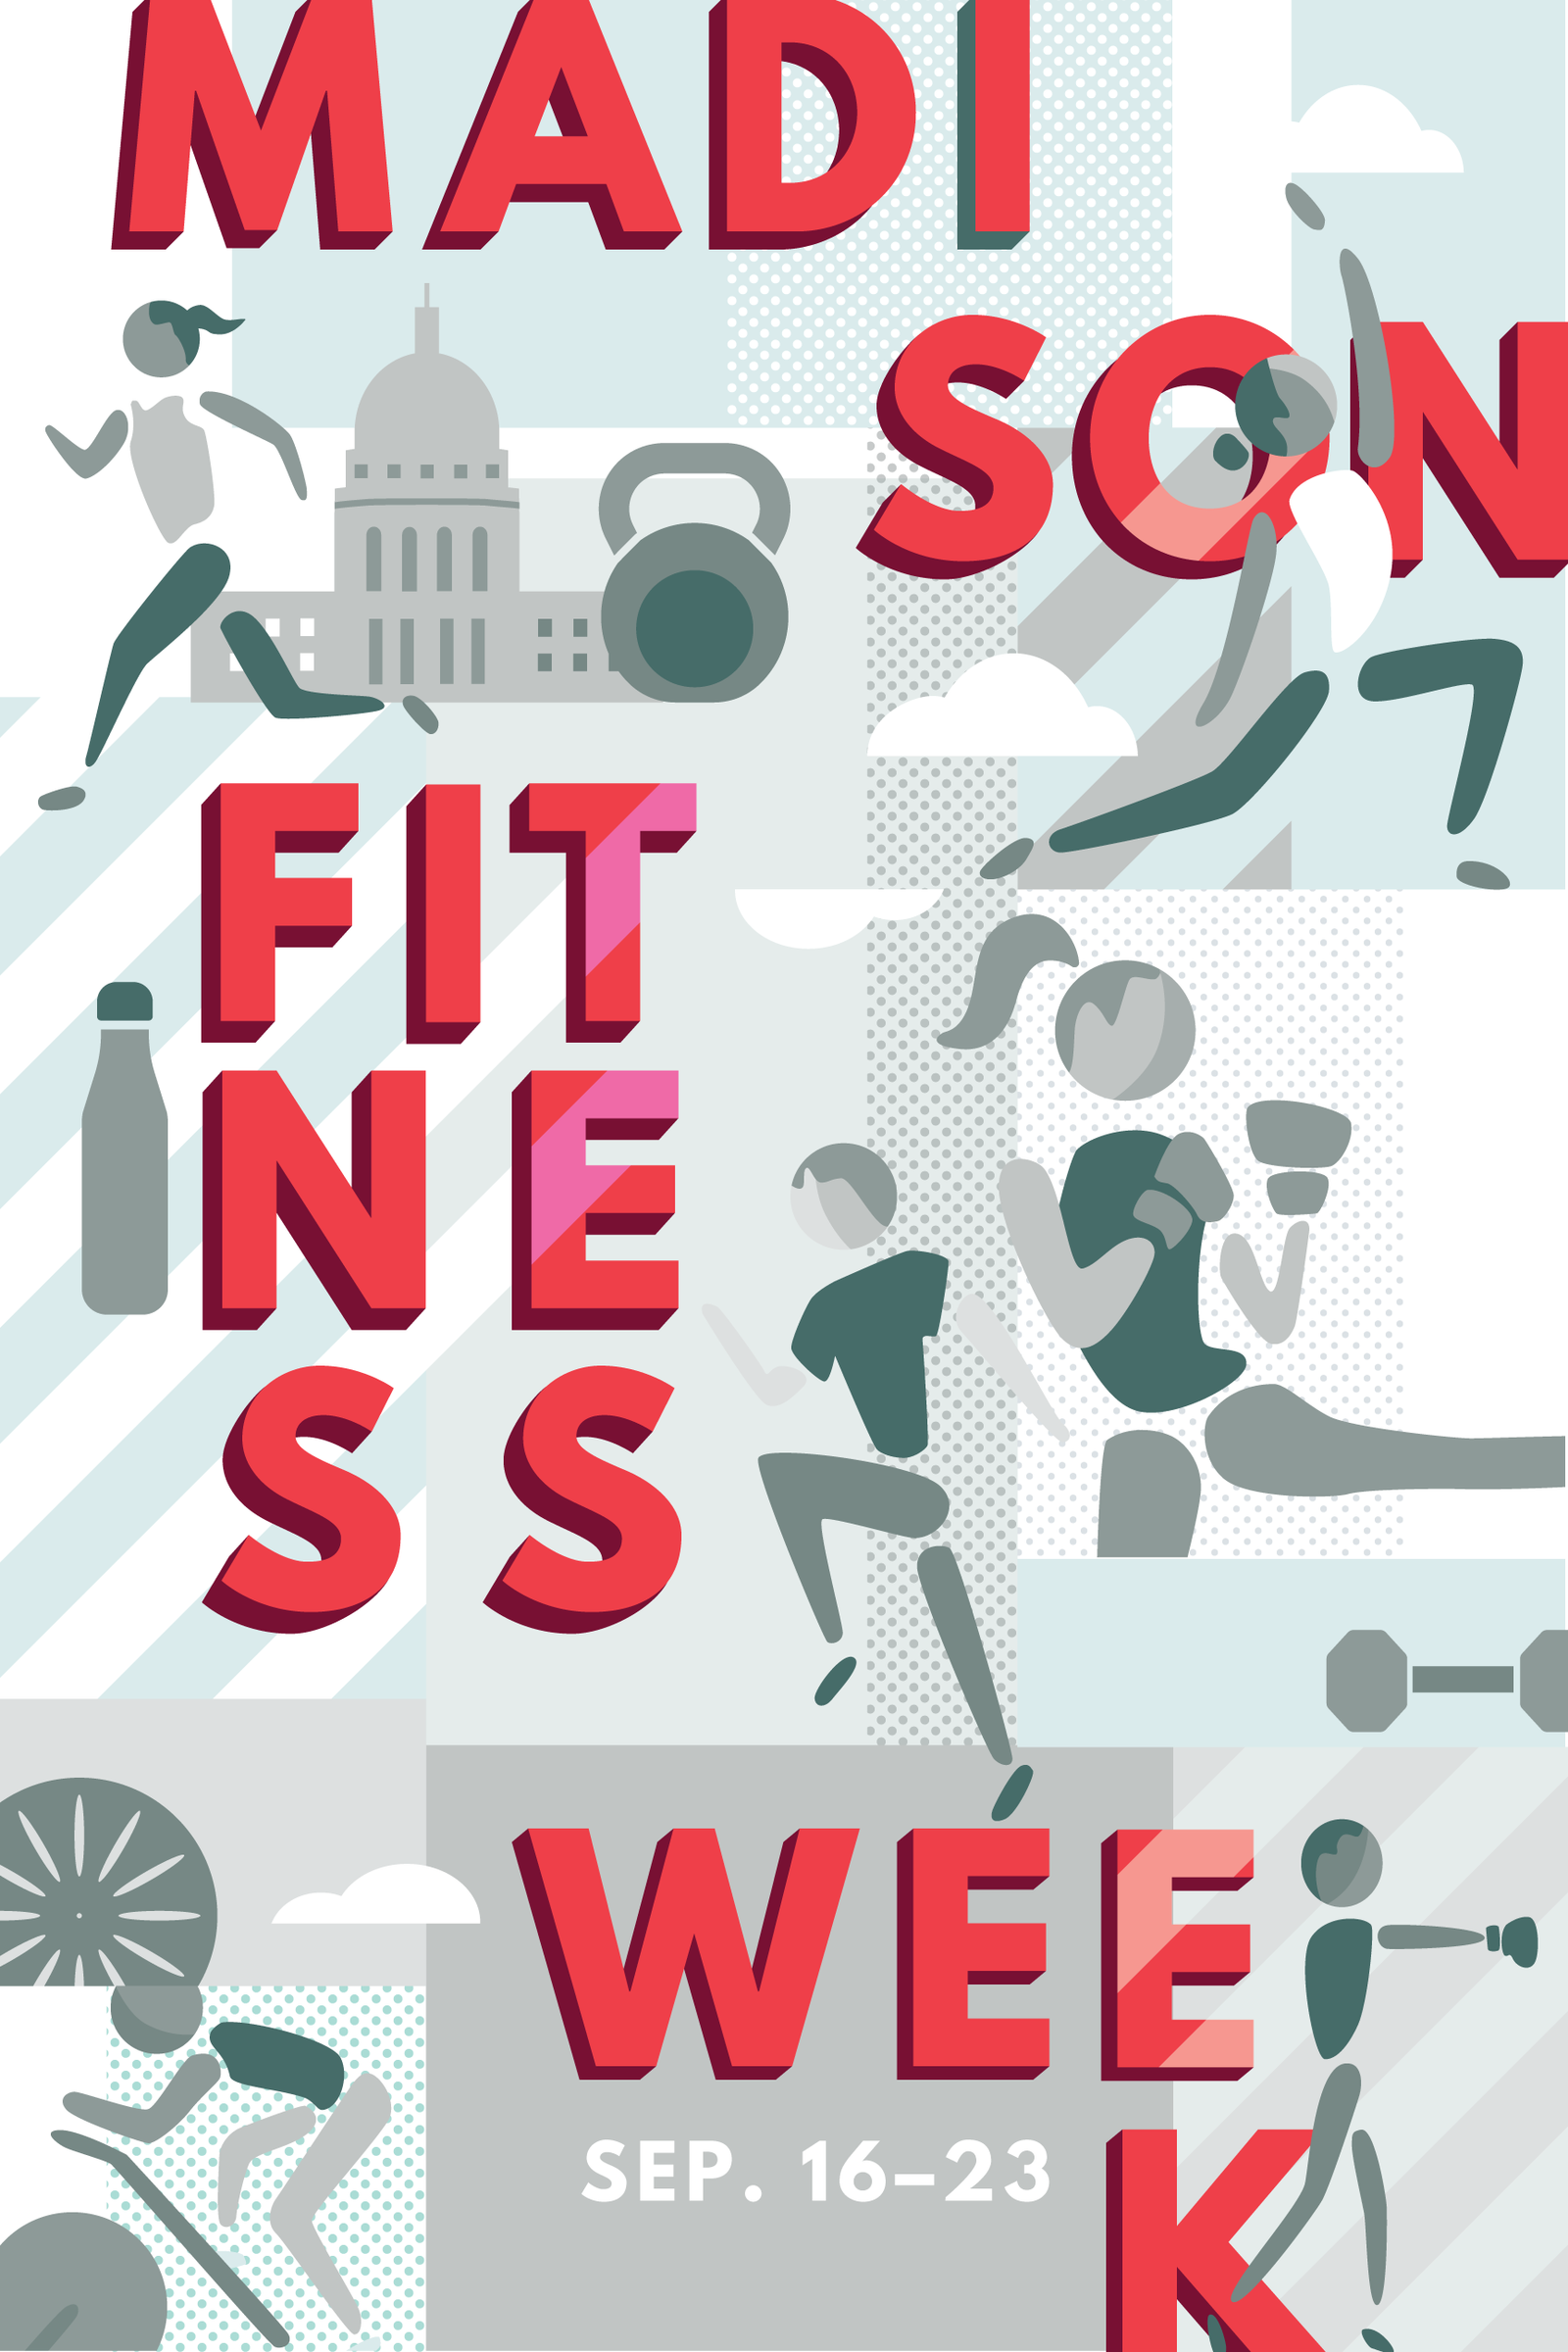 Poster  design for Madison Fitness Week by Christie Evenson, graphic designer and illustrator